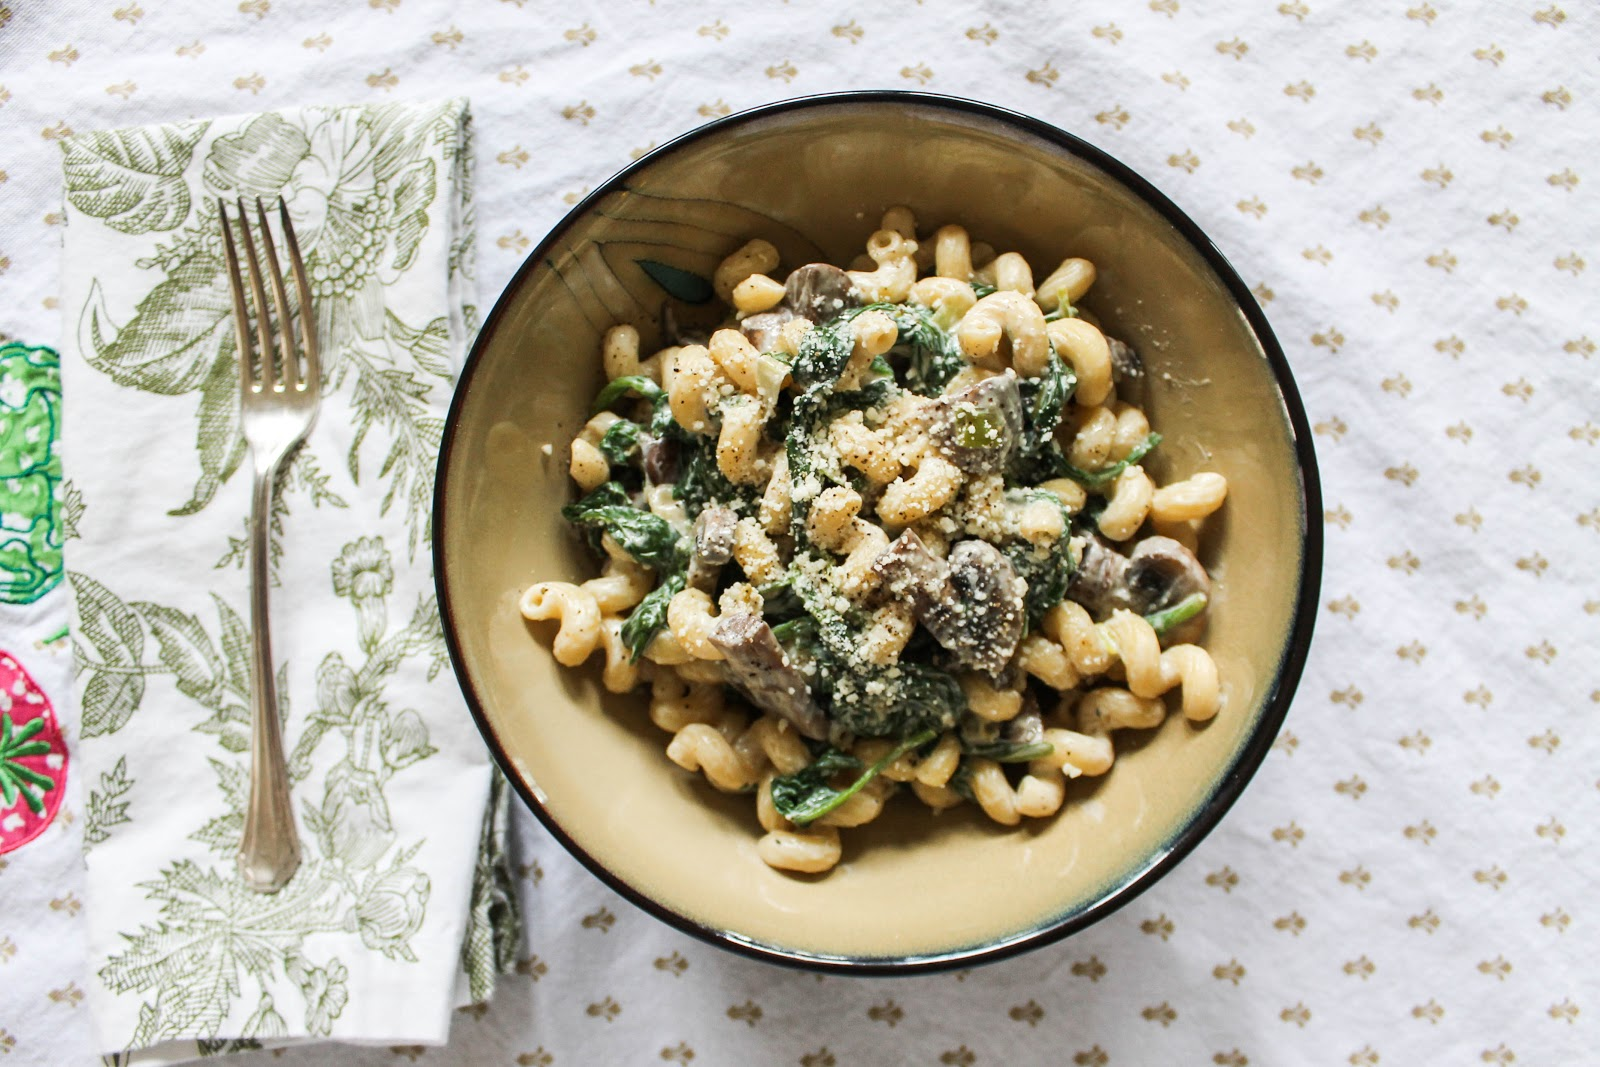 The Quixotic Table: Creamy Chevre Pasta with Spinach and Mushroom